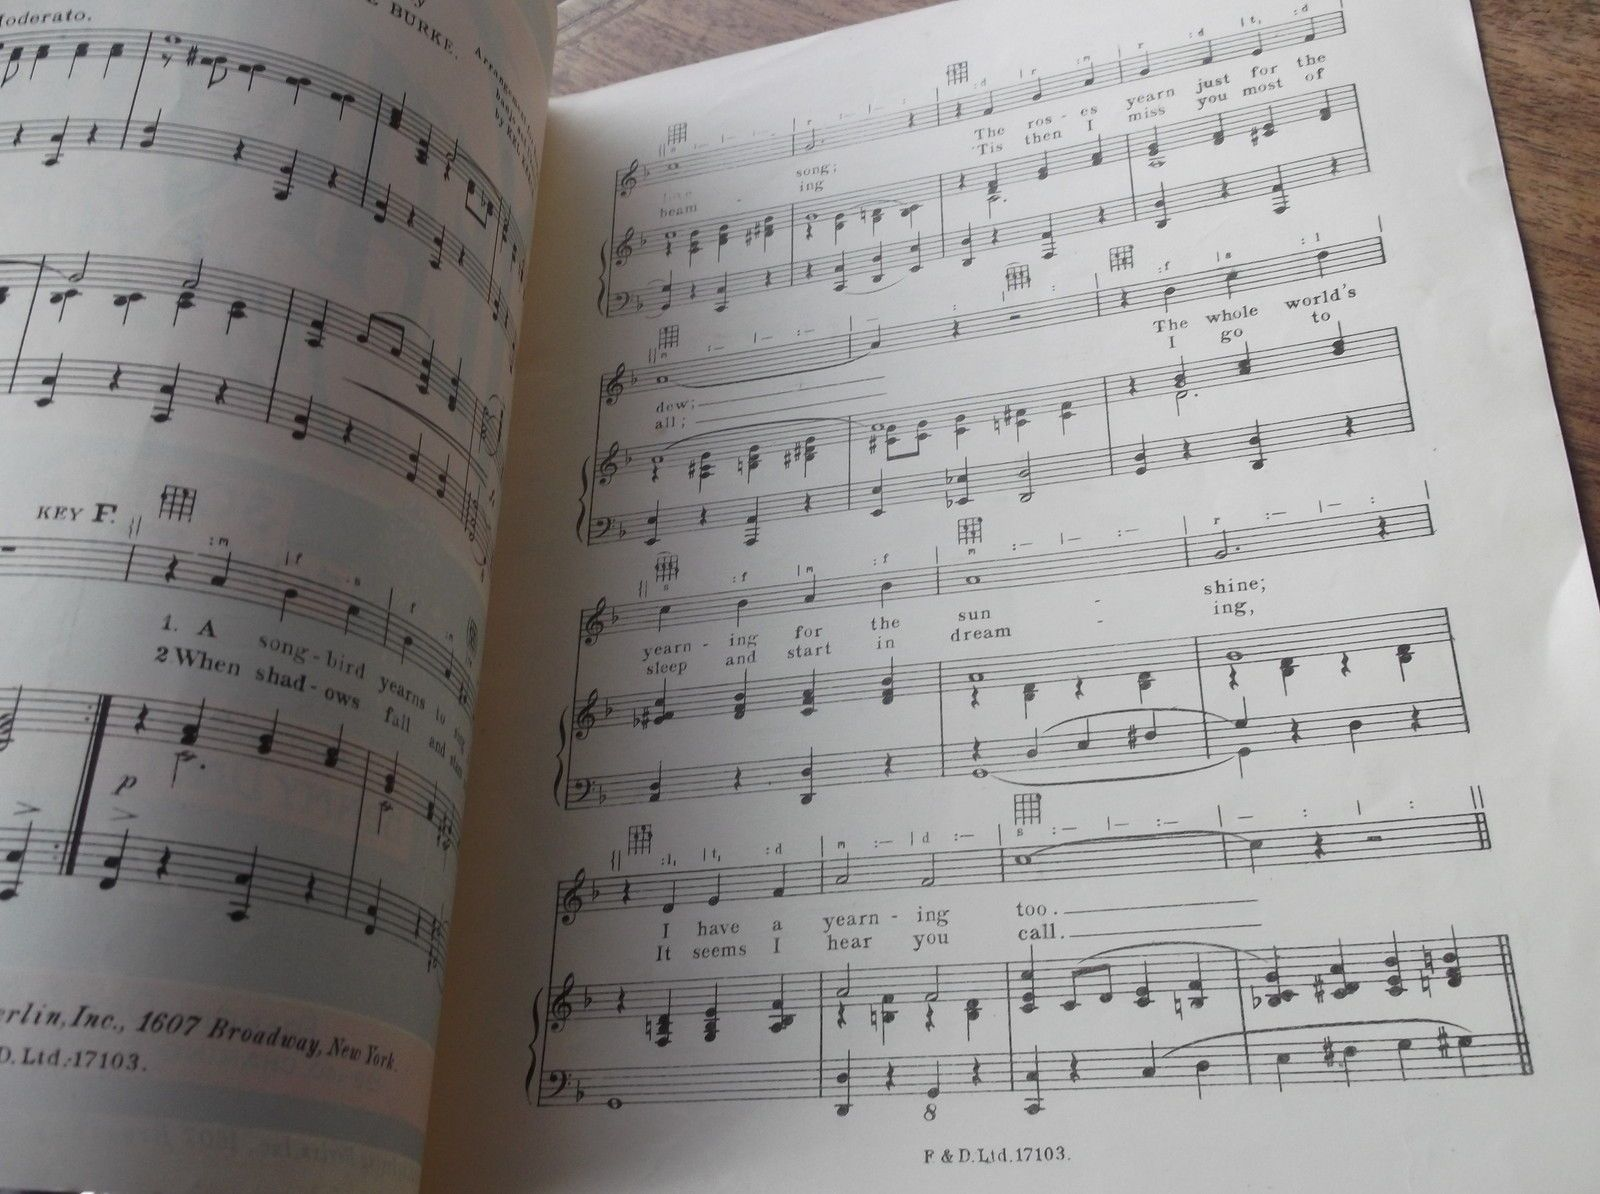 VINTAGE ORIGINAL SHEET MUSIC 1925 YEARNING JUST FOR YOU